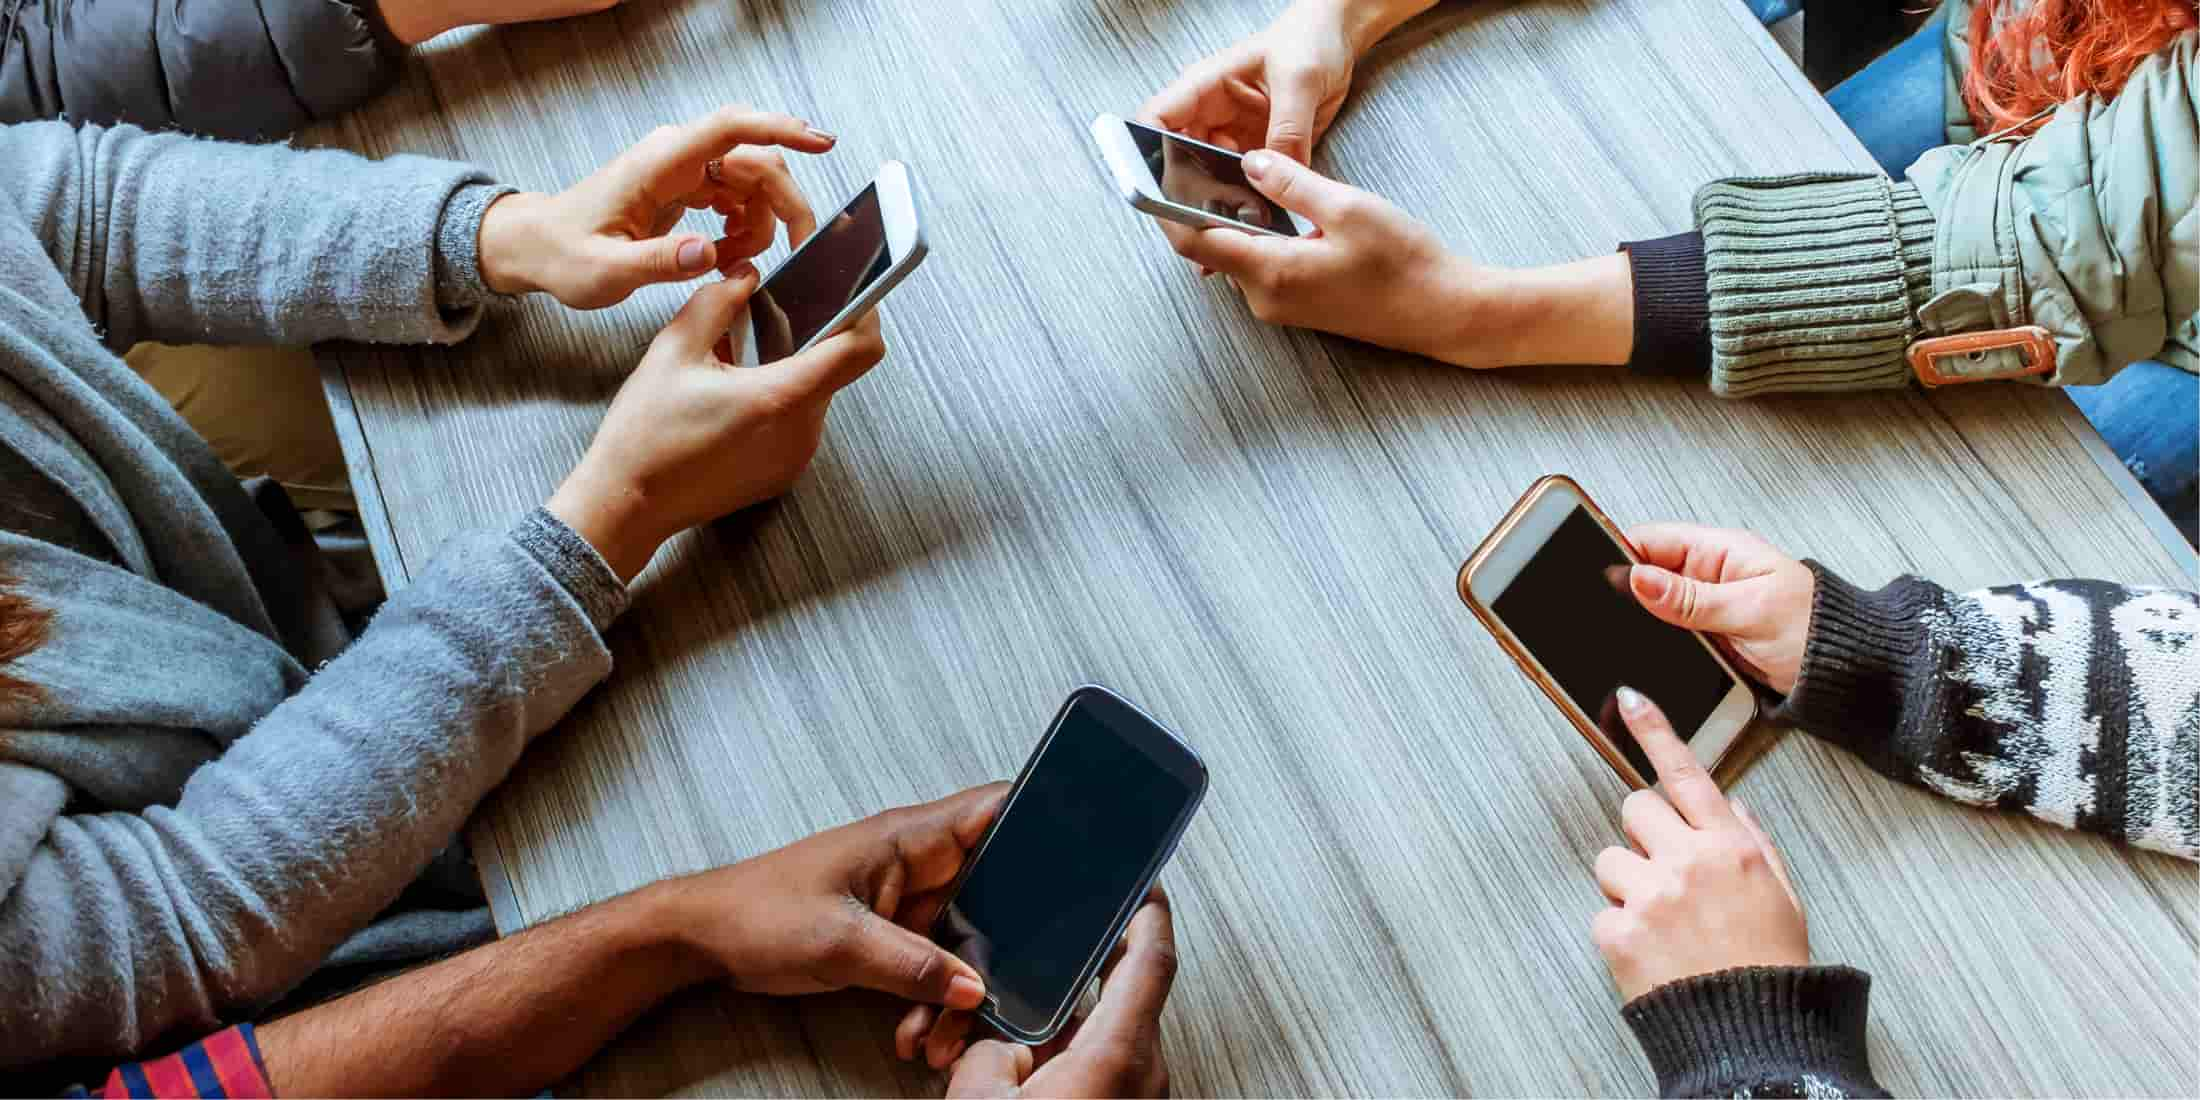 Friends group- all on phones